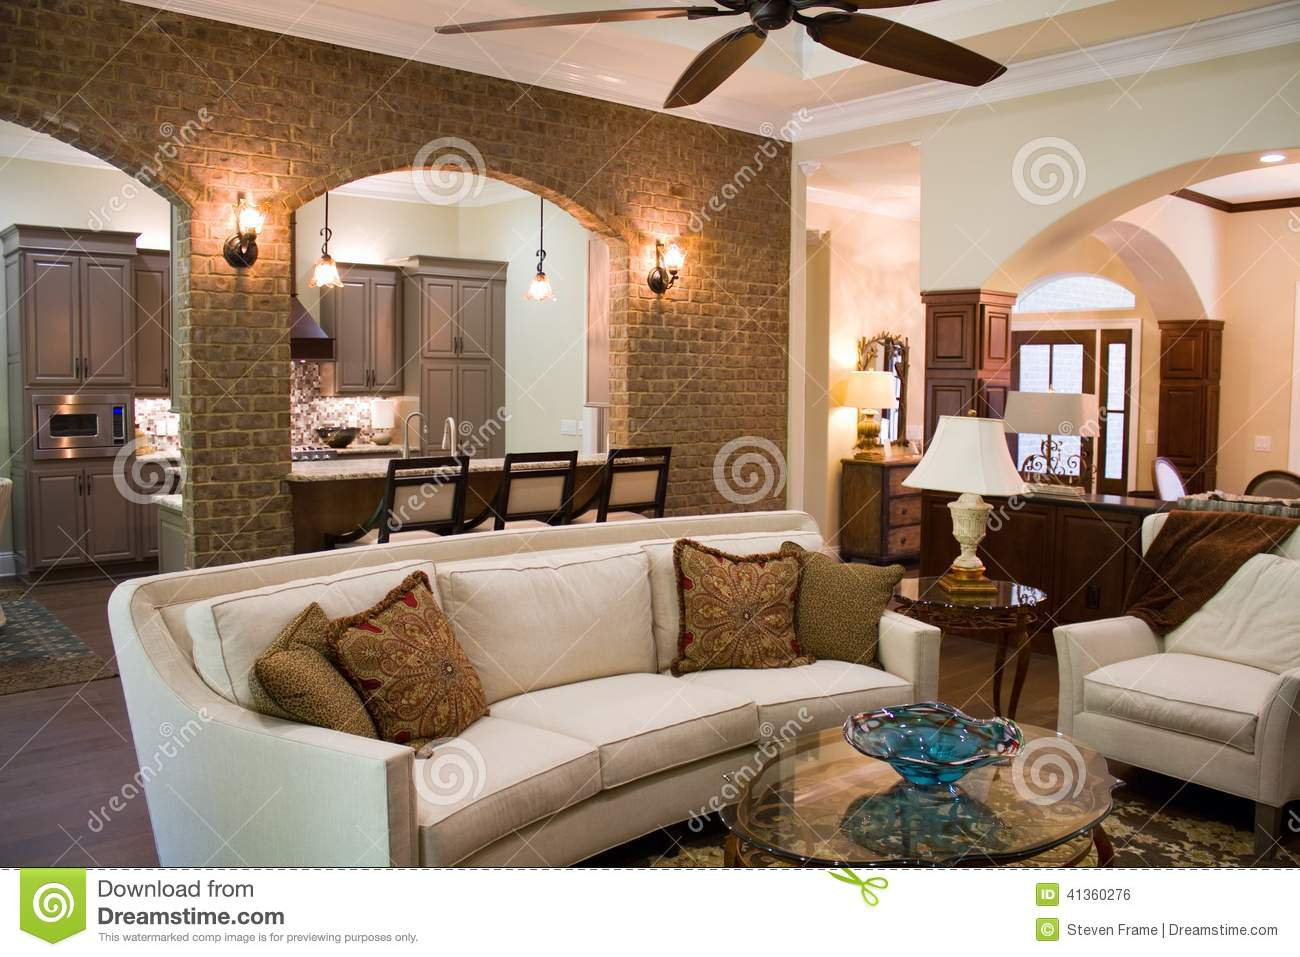 Luxury Home Interior Stock Photo Image 41360276